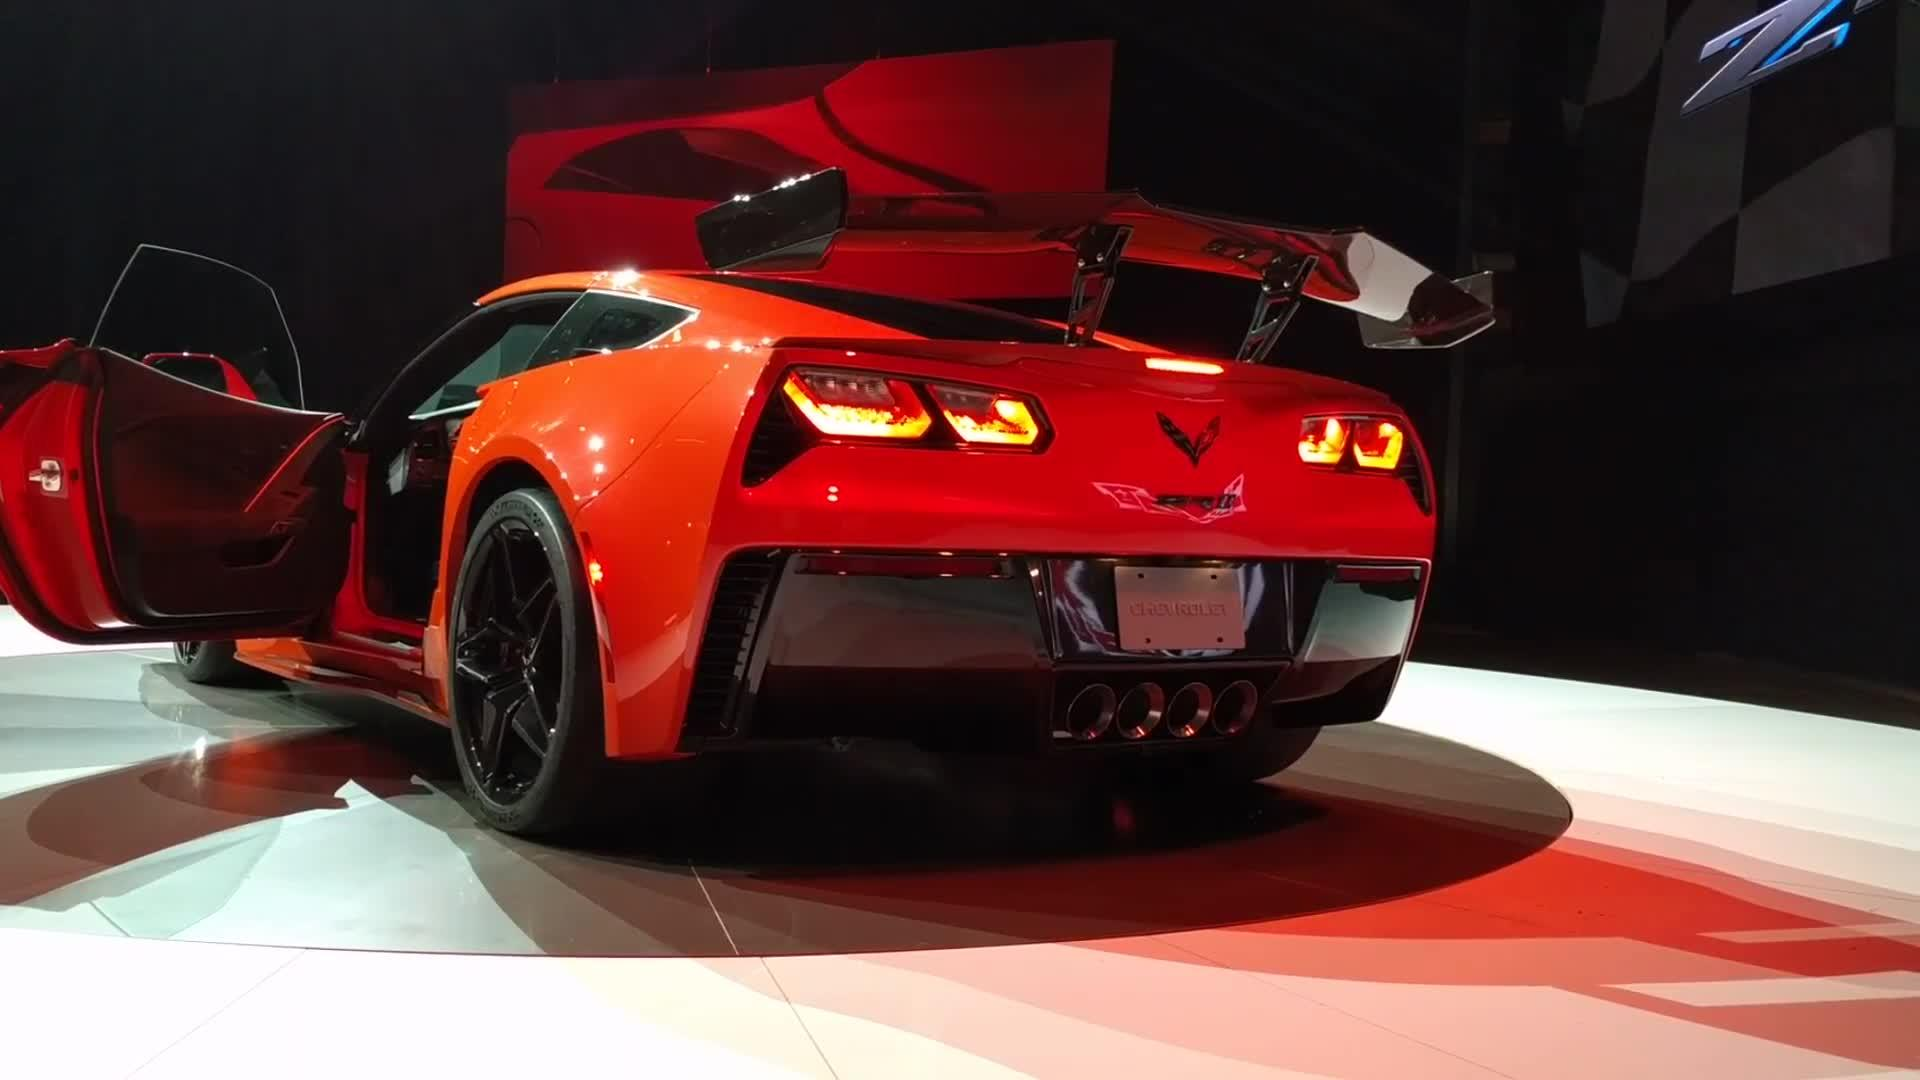 2020 Chevy Corvette Mid Engine Video And Spy Photos Autoblog